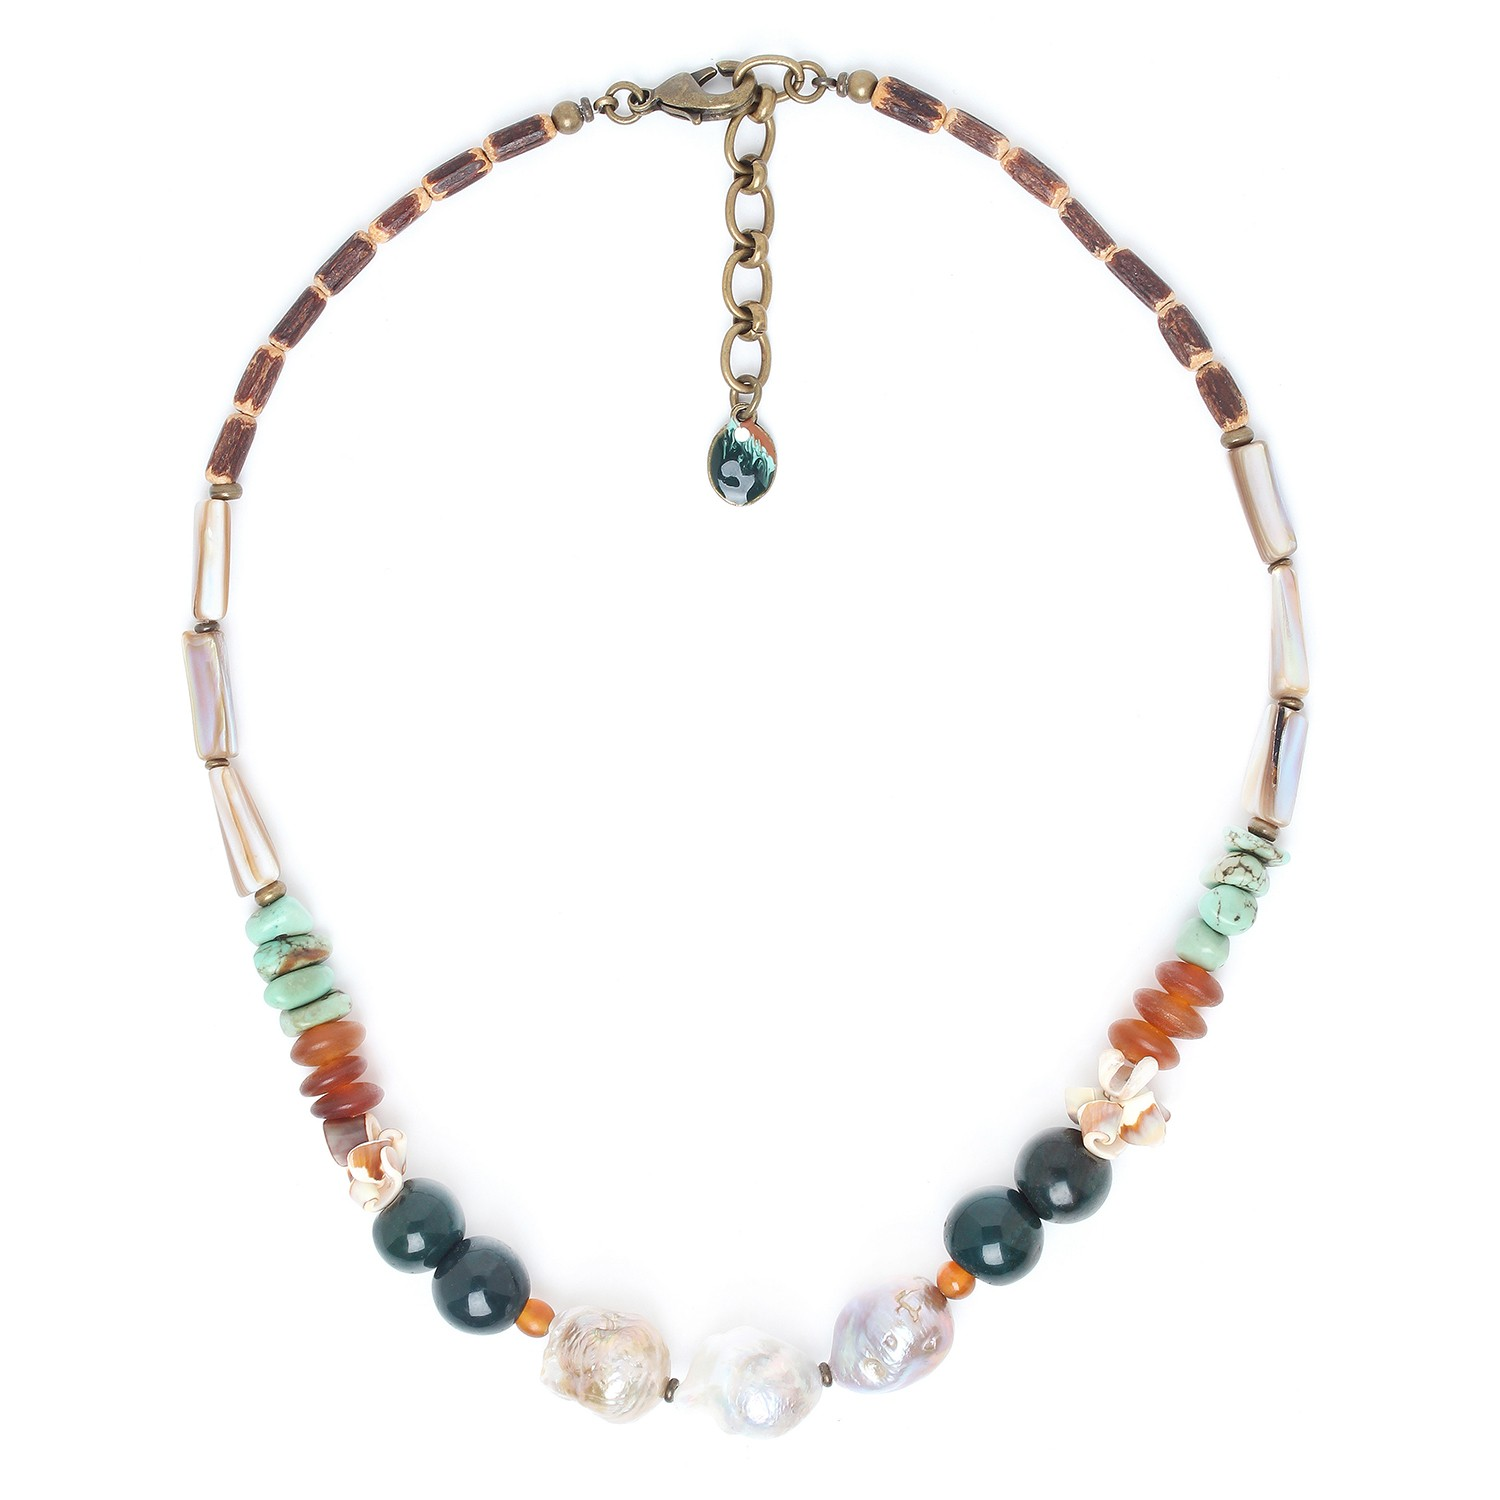 FOREST THERAPY pearls center necklace